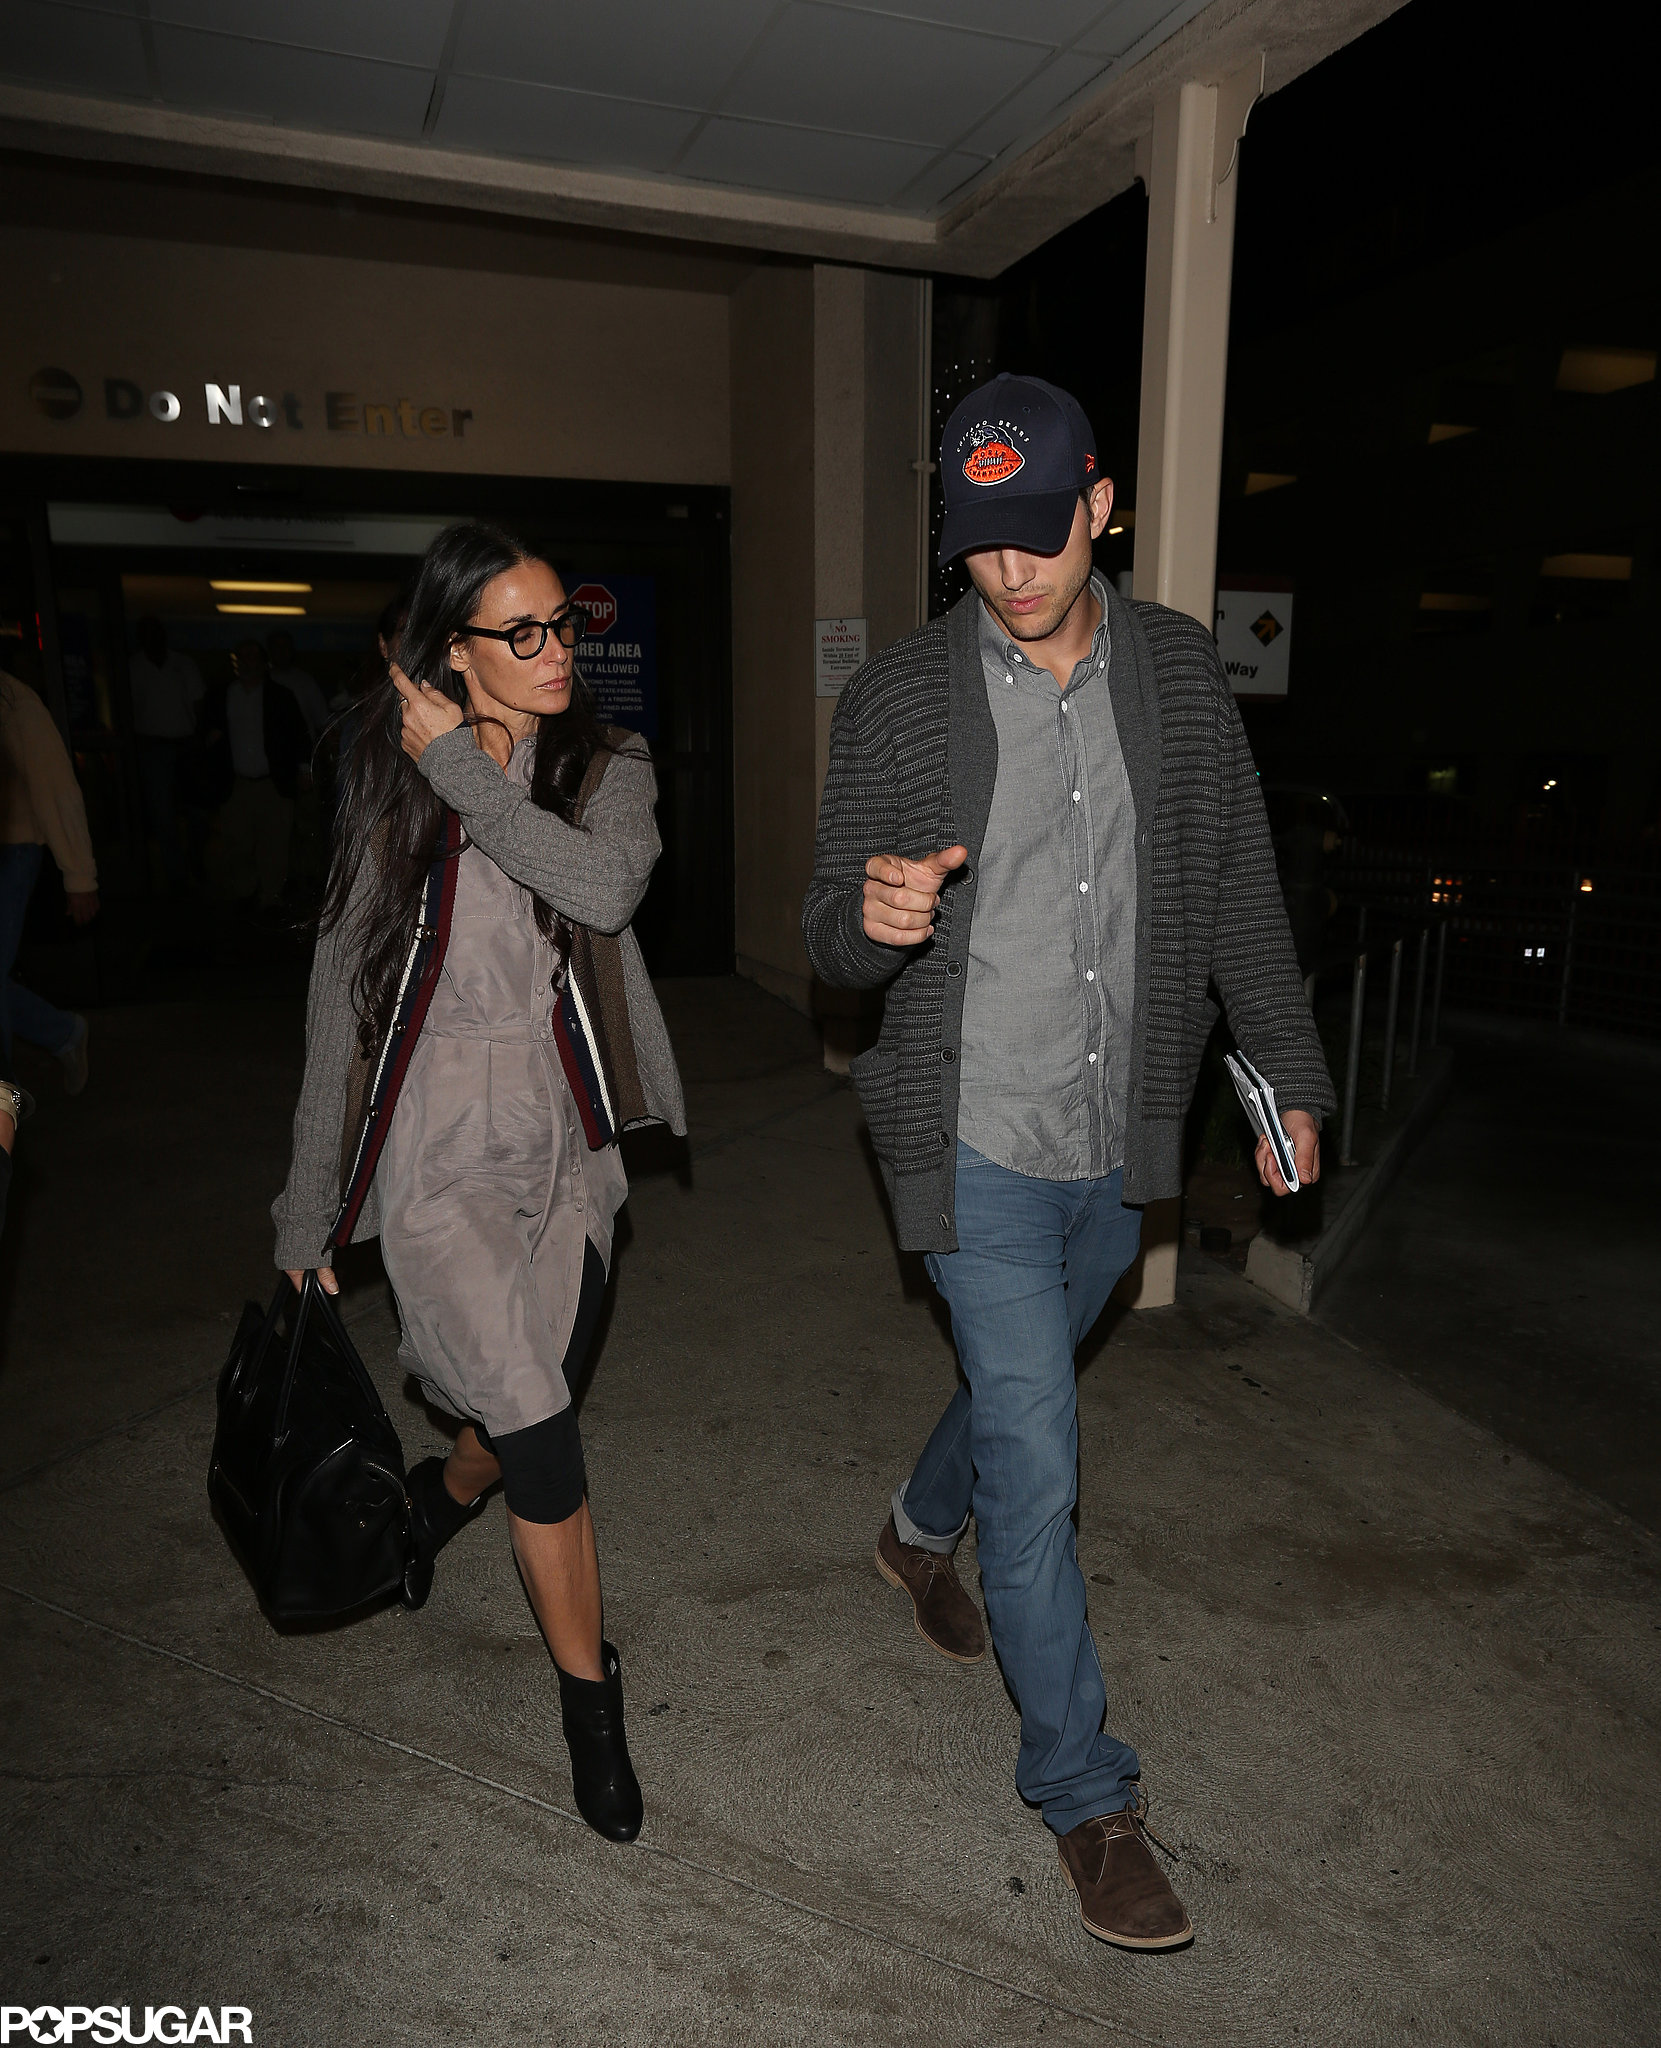 Amicable Exes? Ashton Kutcher Reunites With Ex-Wife Demi Moore For a Flight